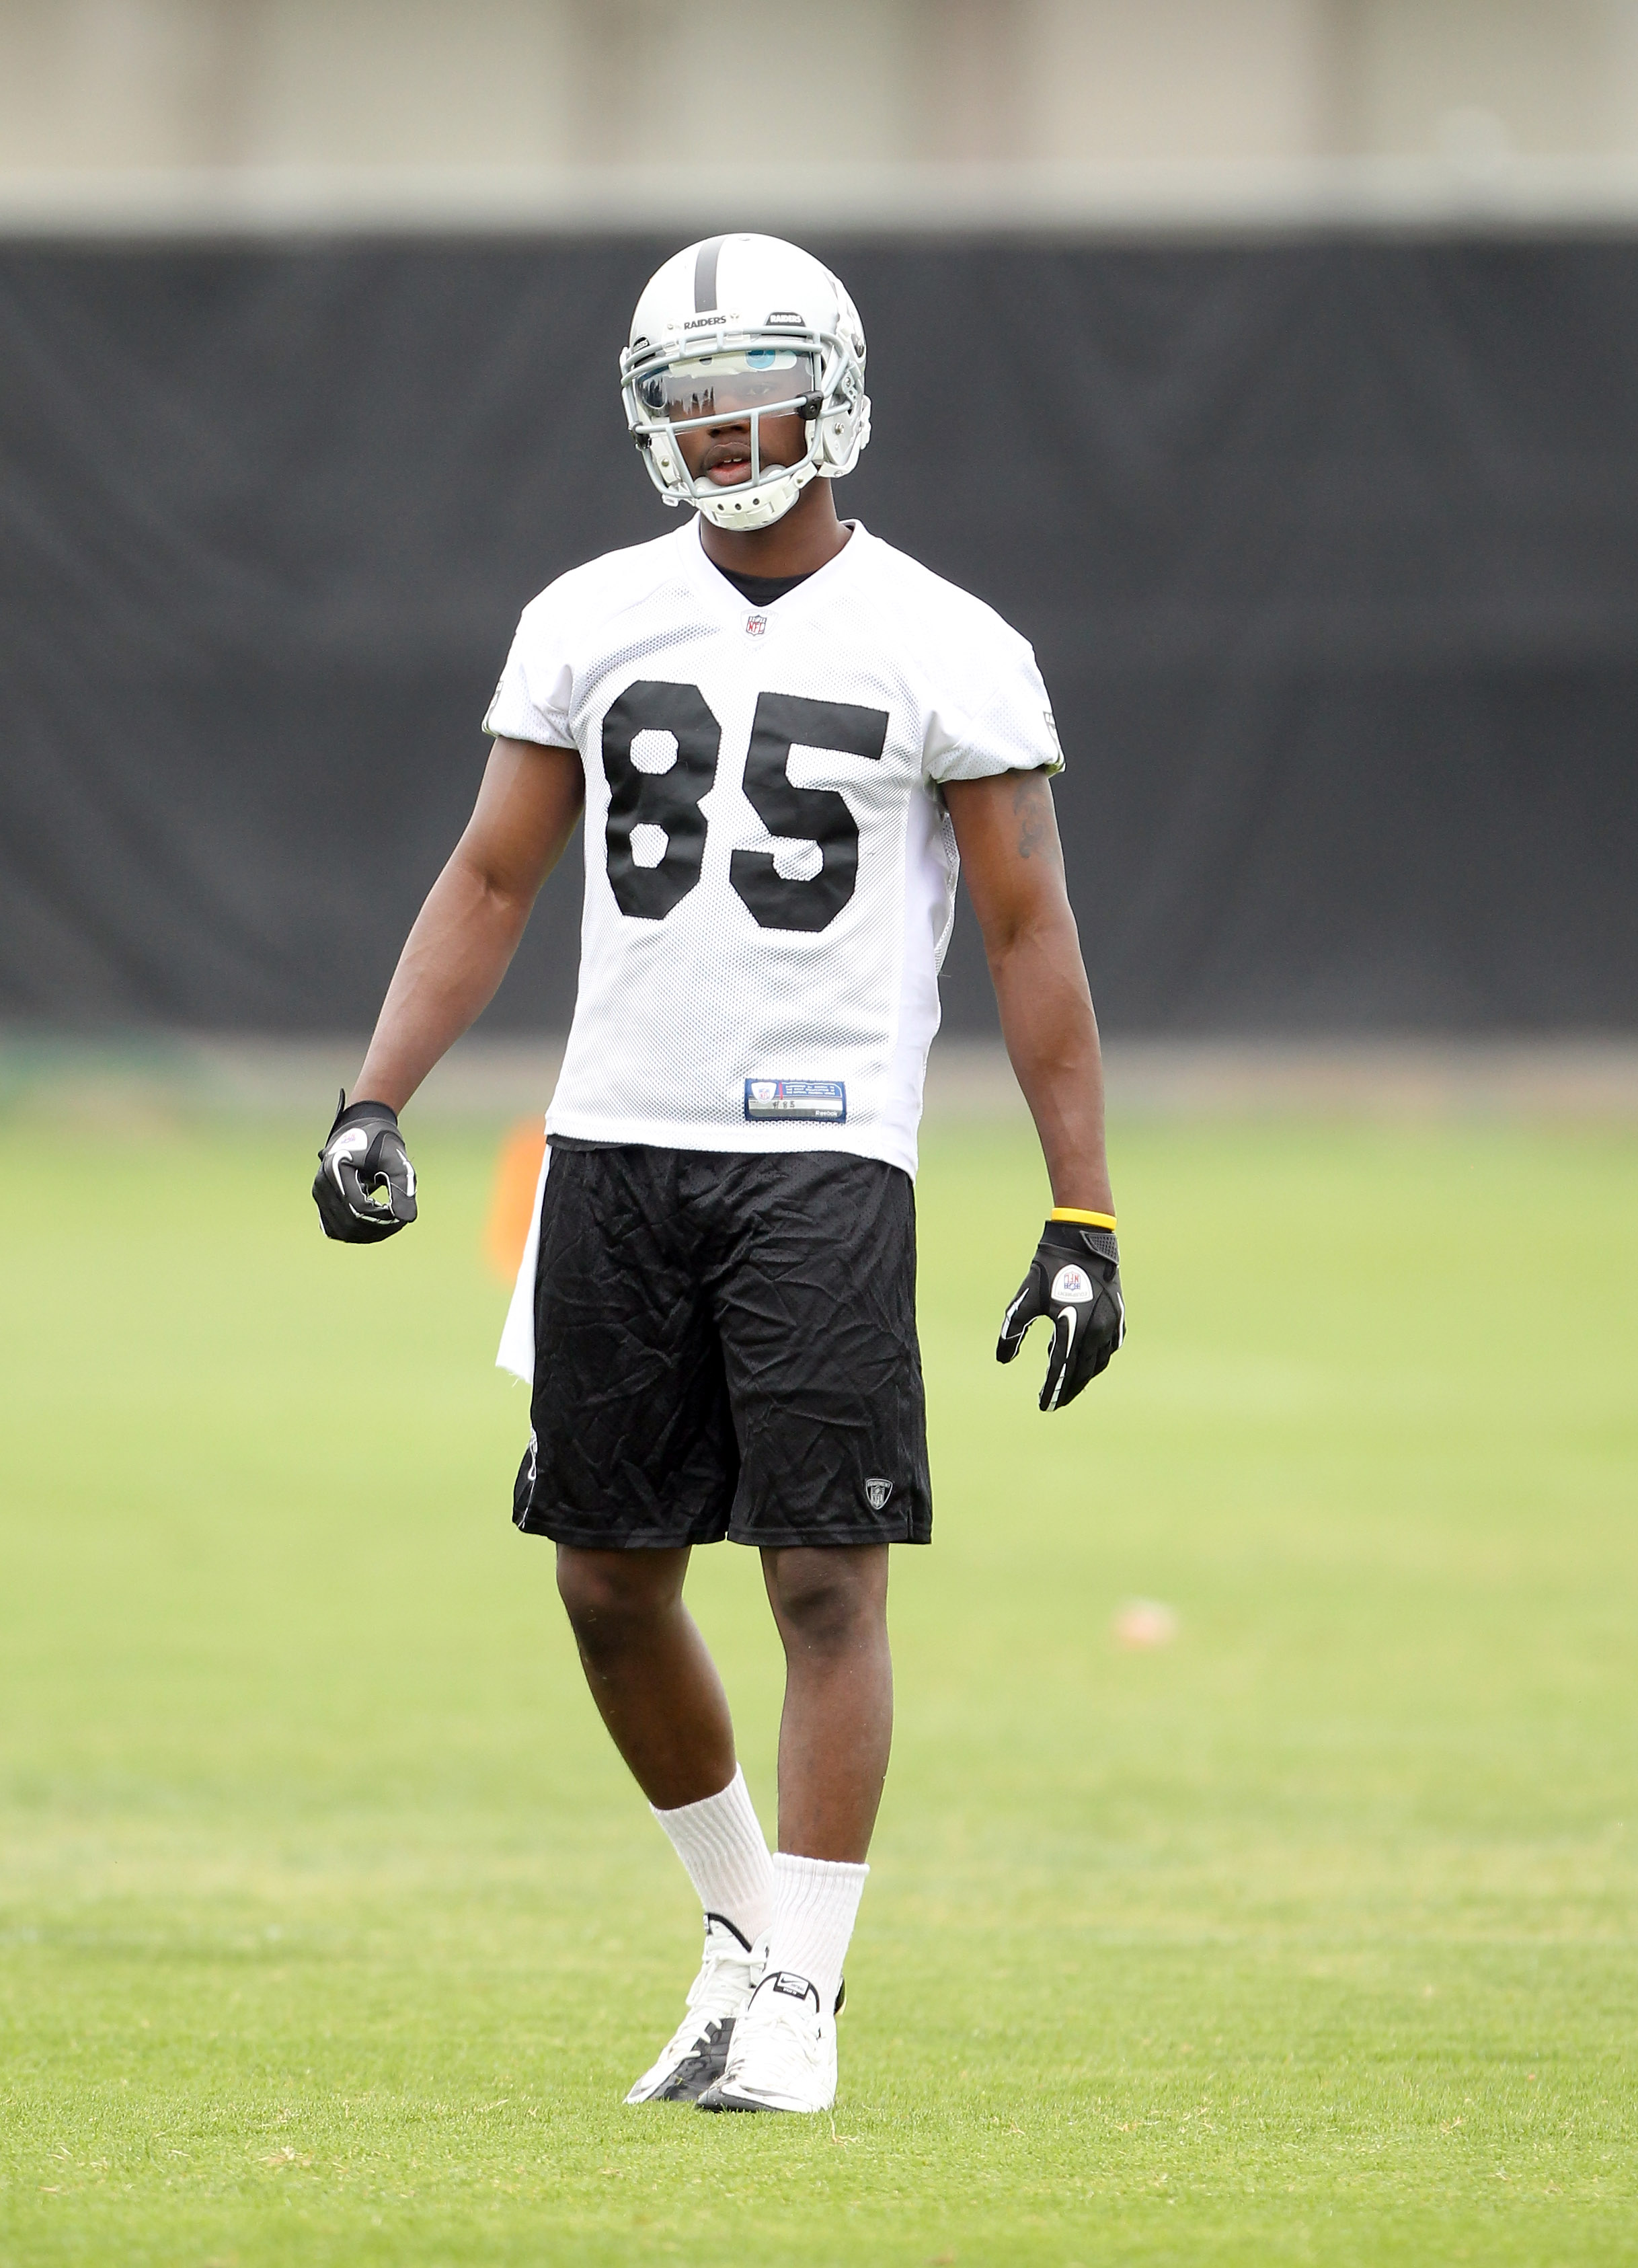 NAPA, CA - AUGUST 01:  Darrius Heyward-Bey #85 of the Oakland Raiders works out during the Raiders training camp at their Napa Valley Training Complex on August 1, 2010 in Napa, California.  (Photo by Ezra Shaw/Getty Images)